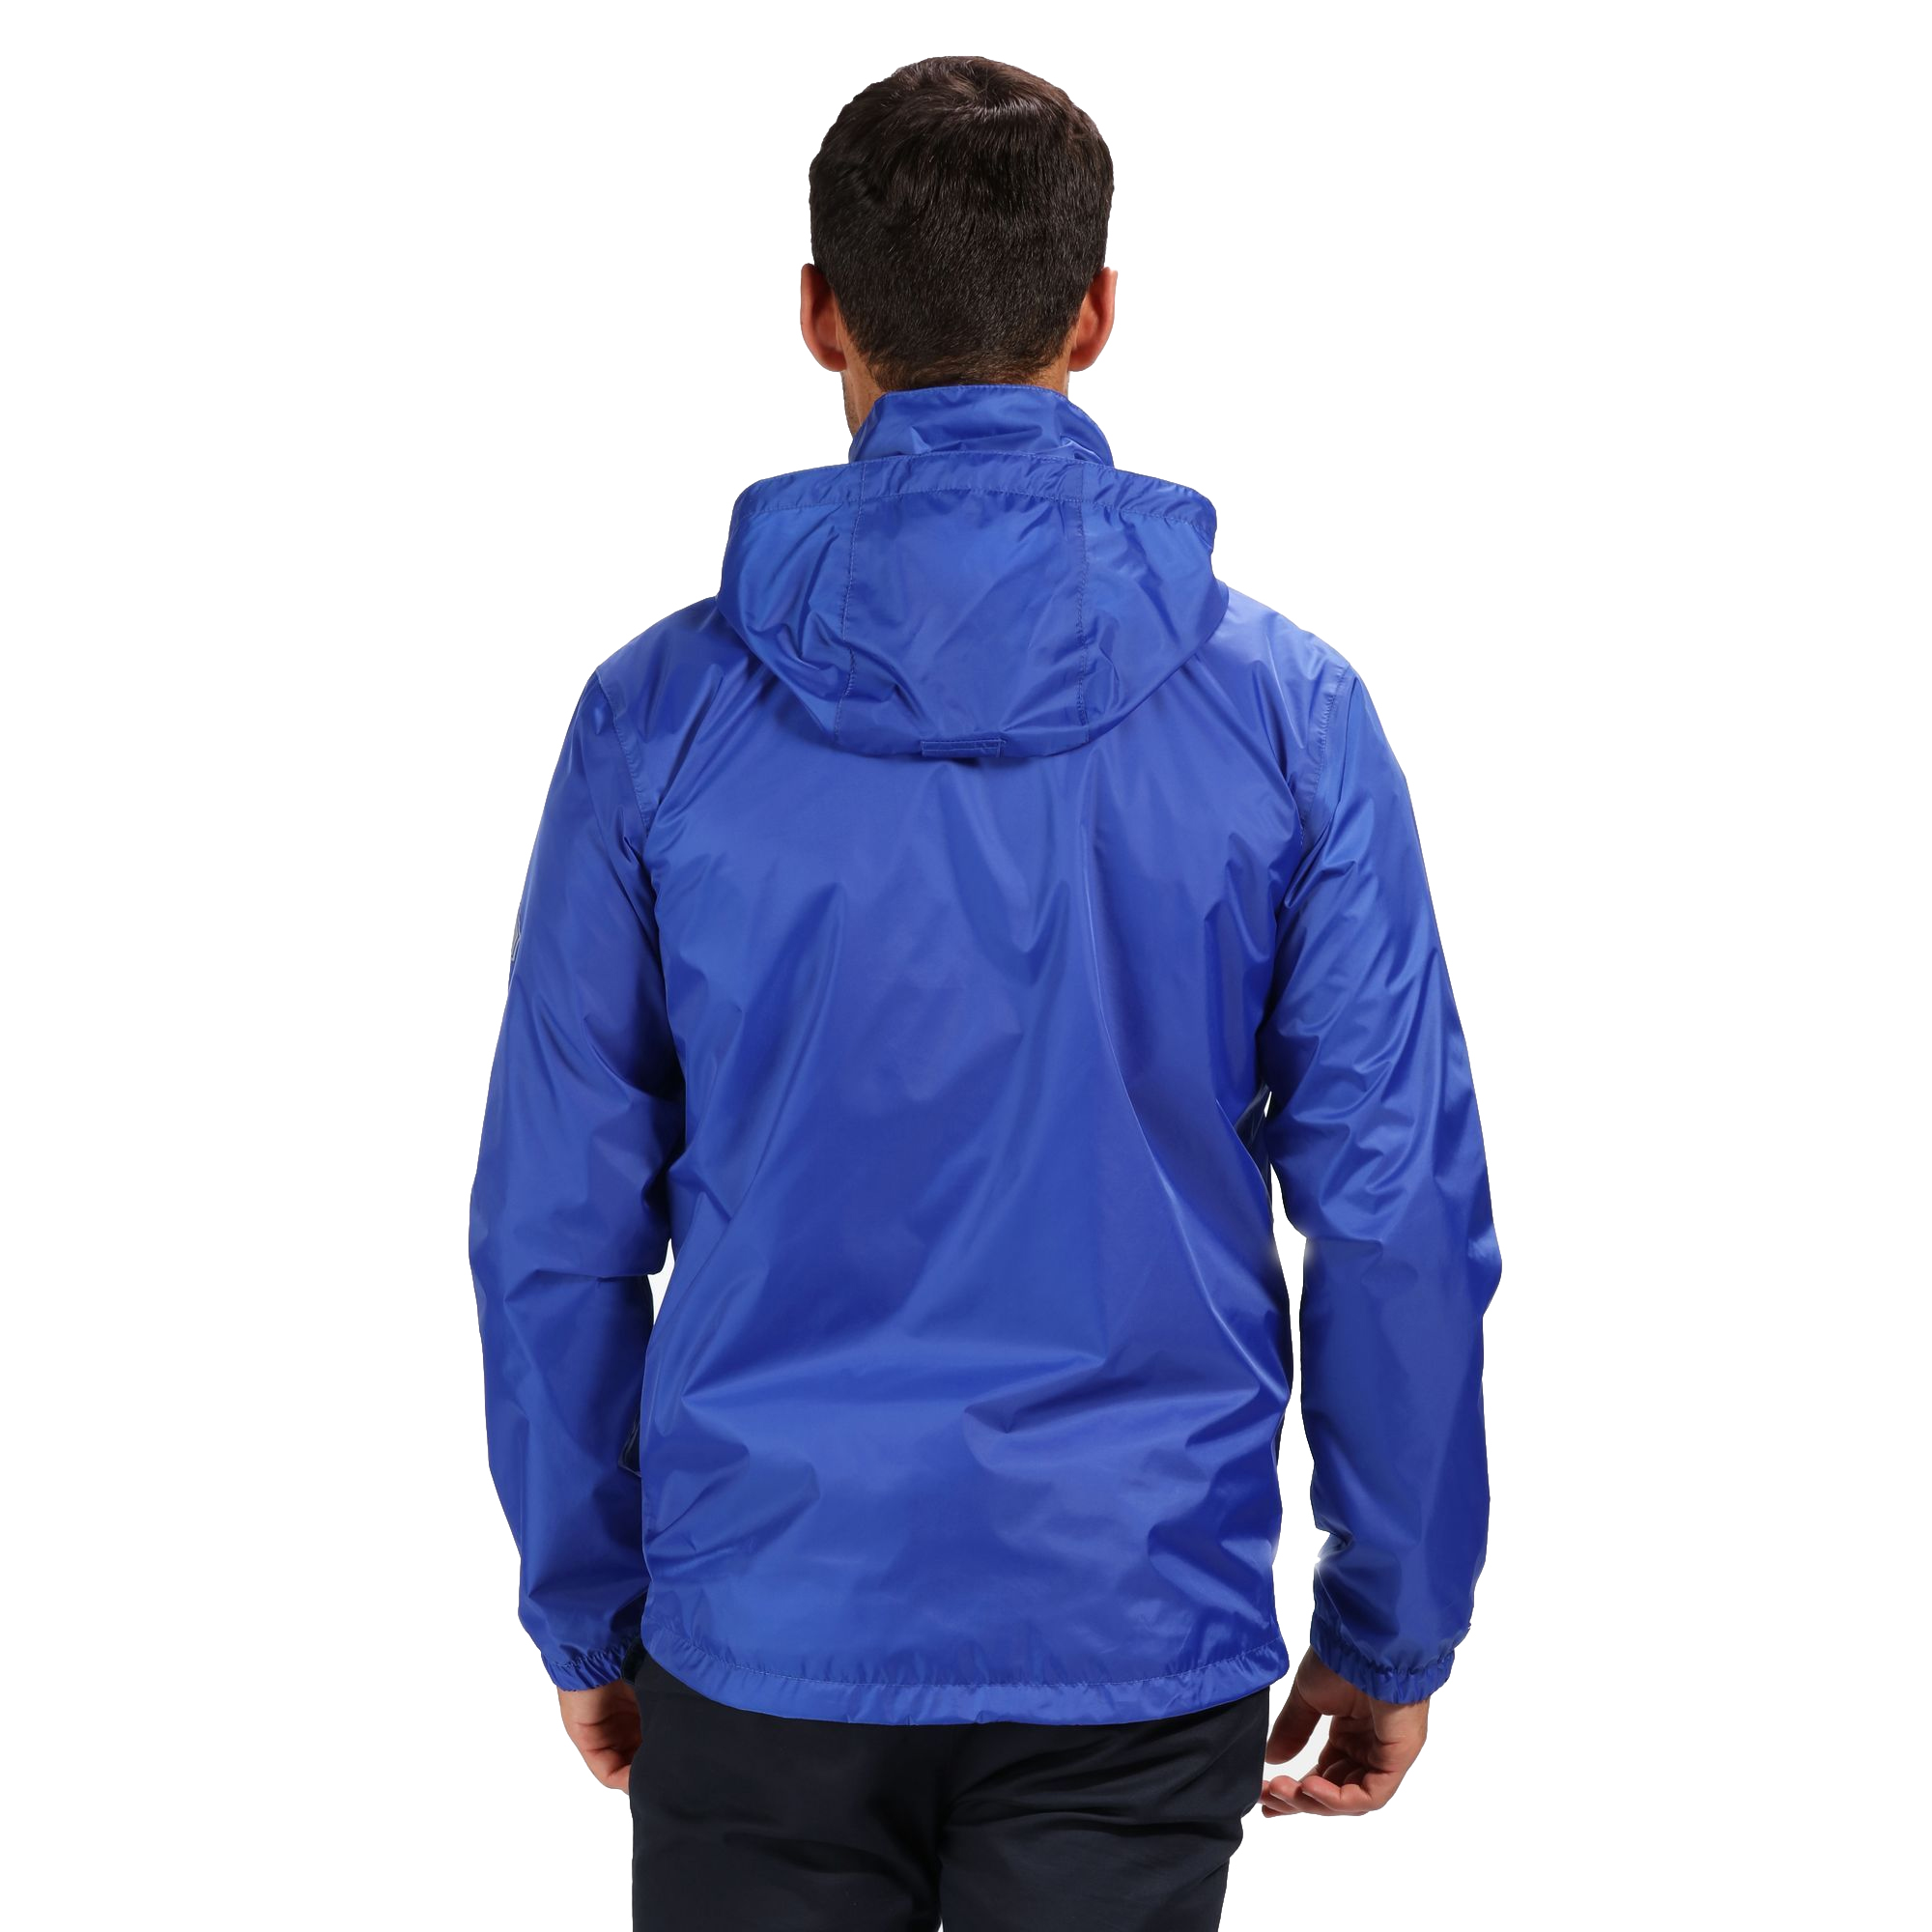 Mens-Regatta-Lightweight-Waterproof-Windproof-Jacket-Clearance-RRP-70-00 thumbnail 40